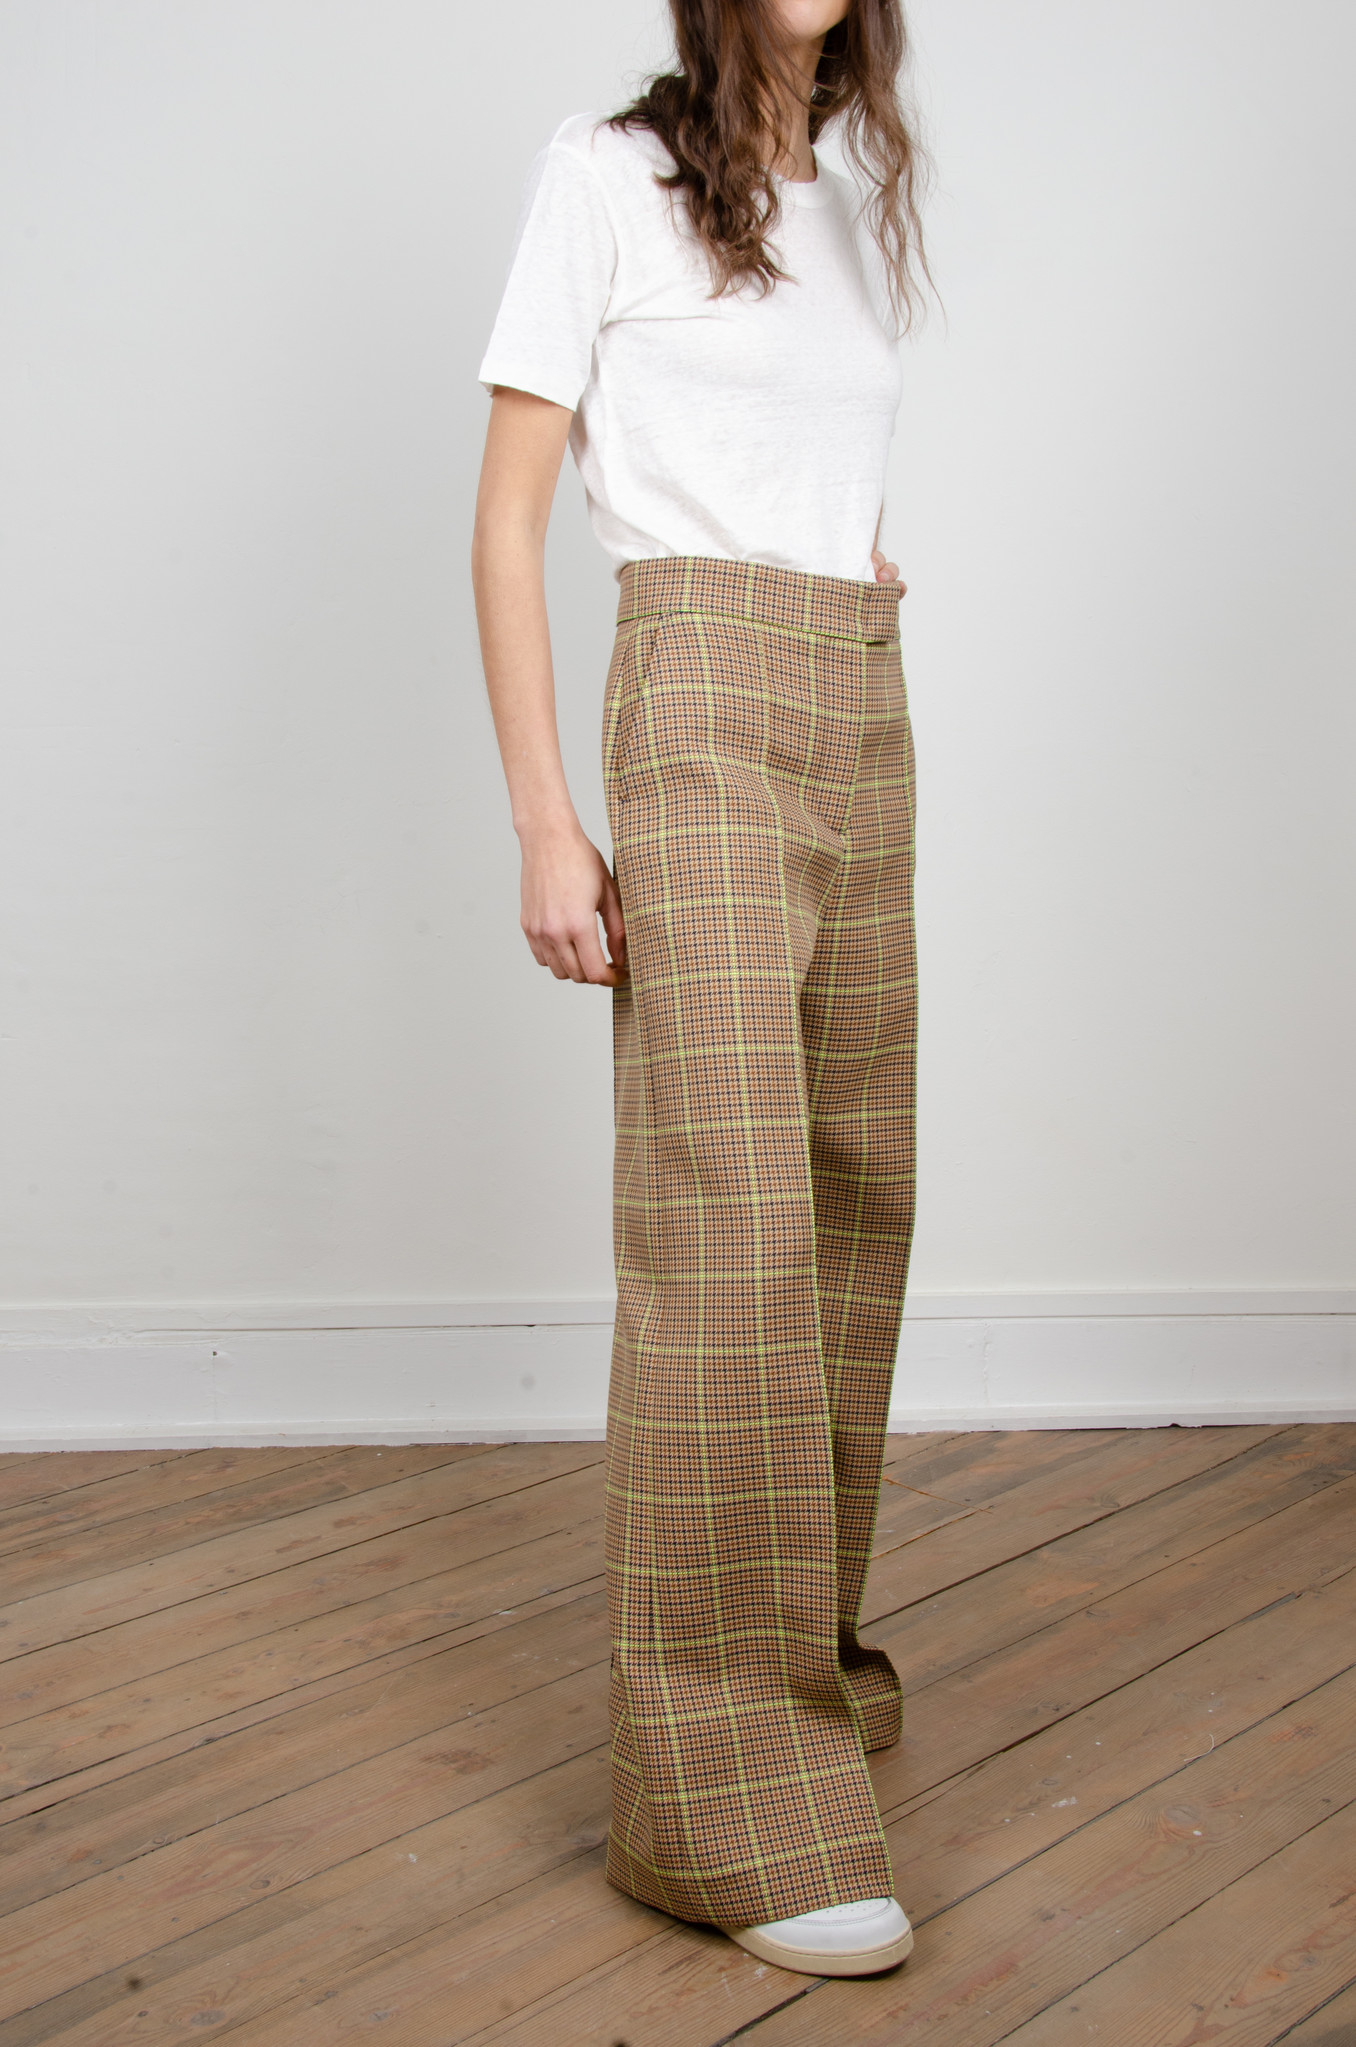 WIDE NEON CHECKERED TROUSERS-5